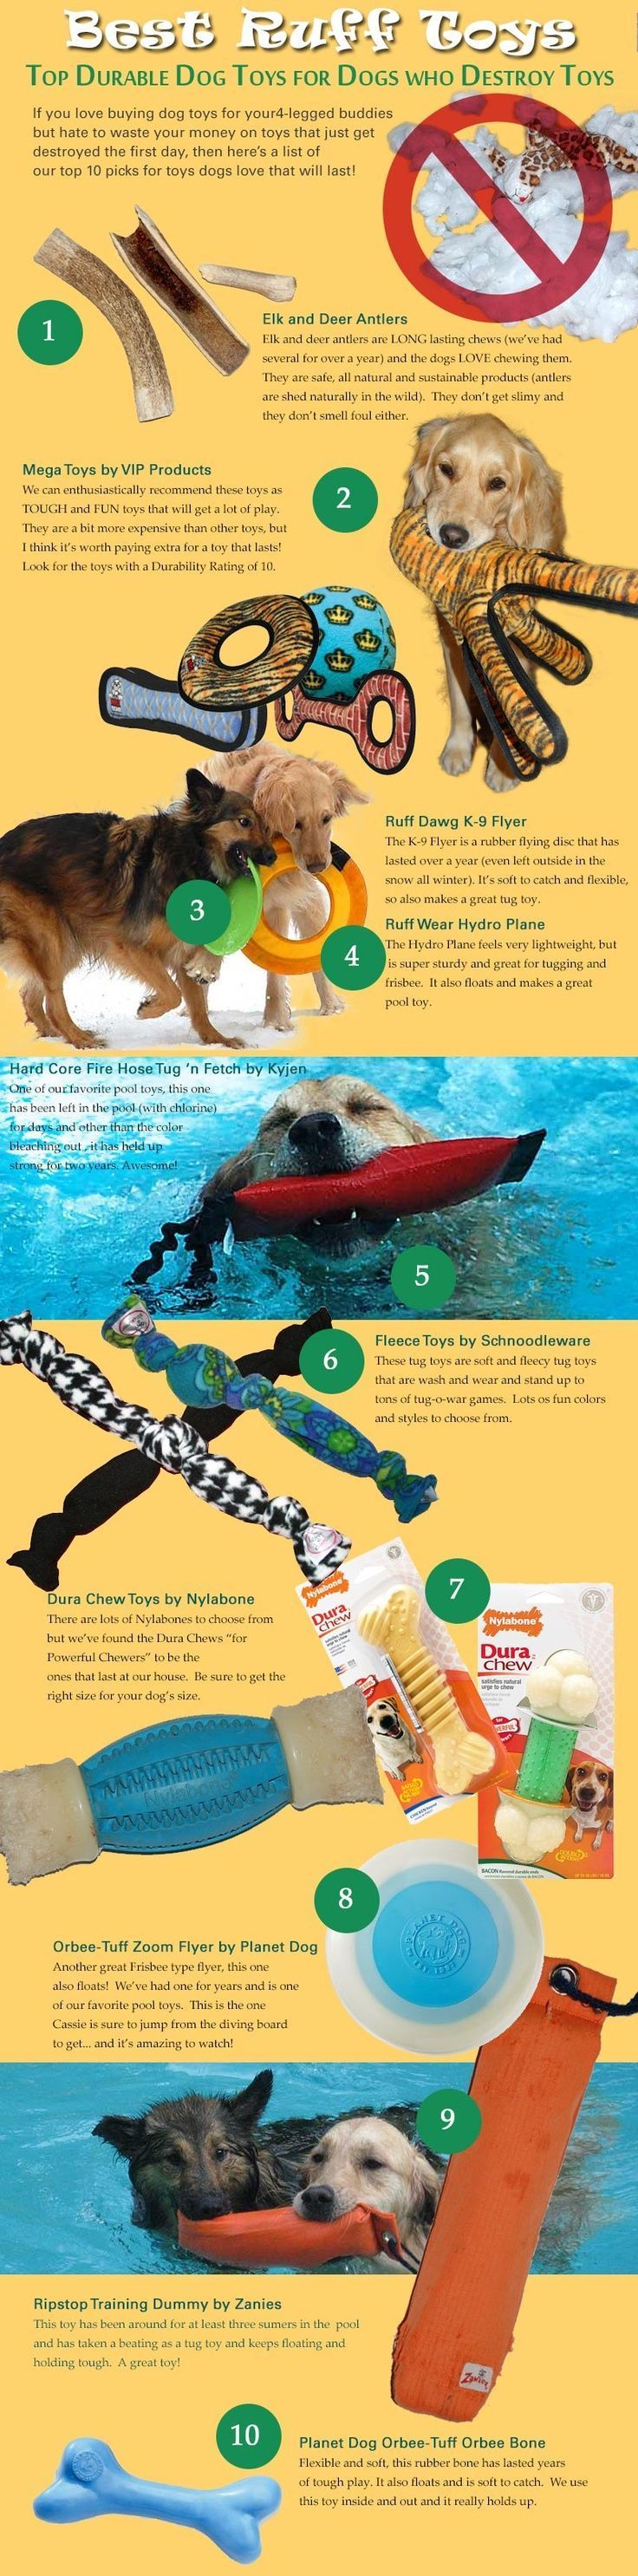 The 25 best Durable dog toys ideas on Pinterest